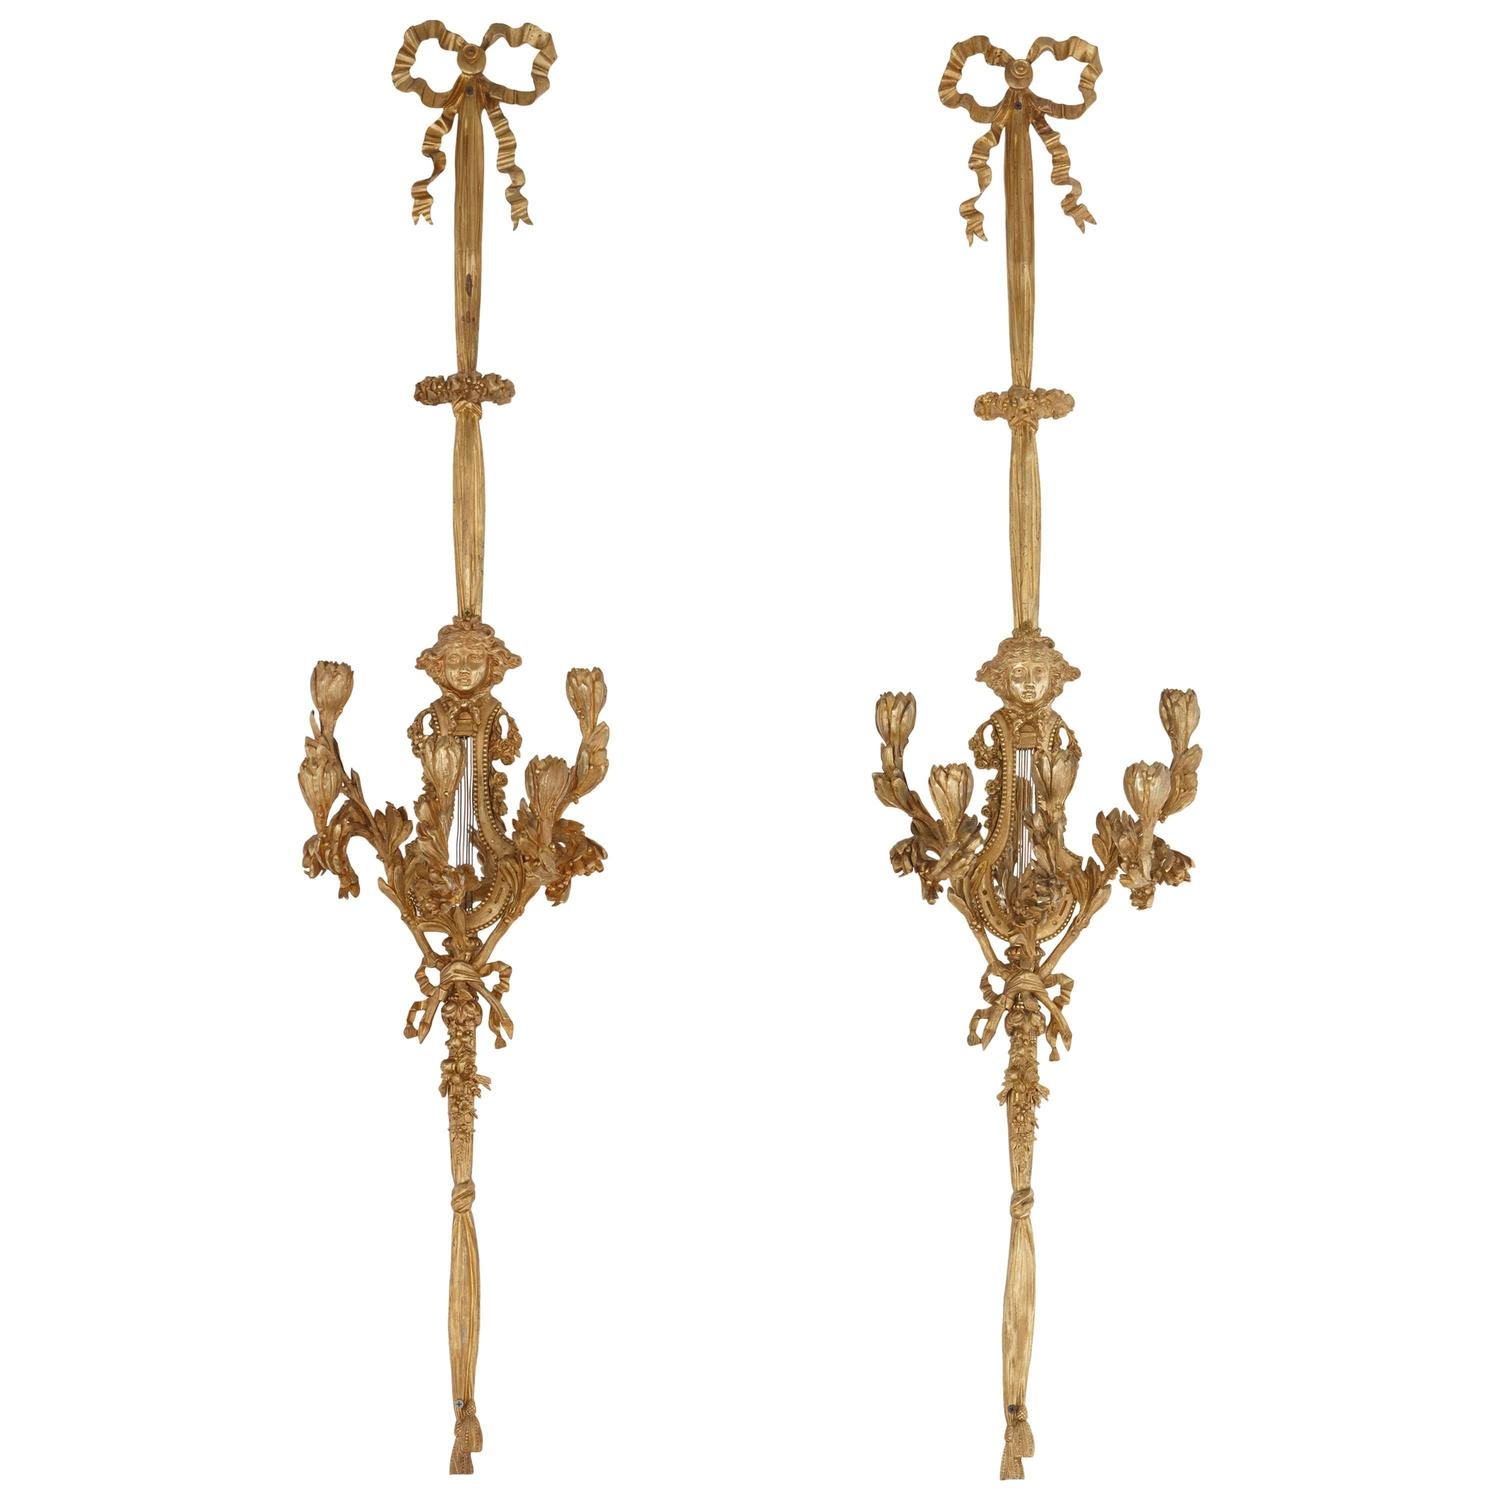 Small White Wall Lights : Very Large Pair of Louis XVI Style Ormolu Wall Lights For Sale at 1stdibs